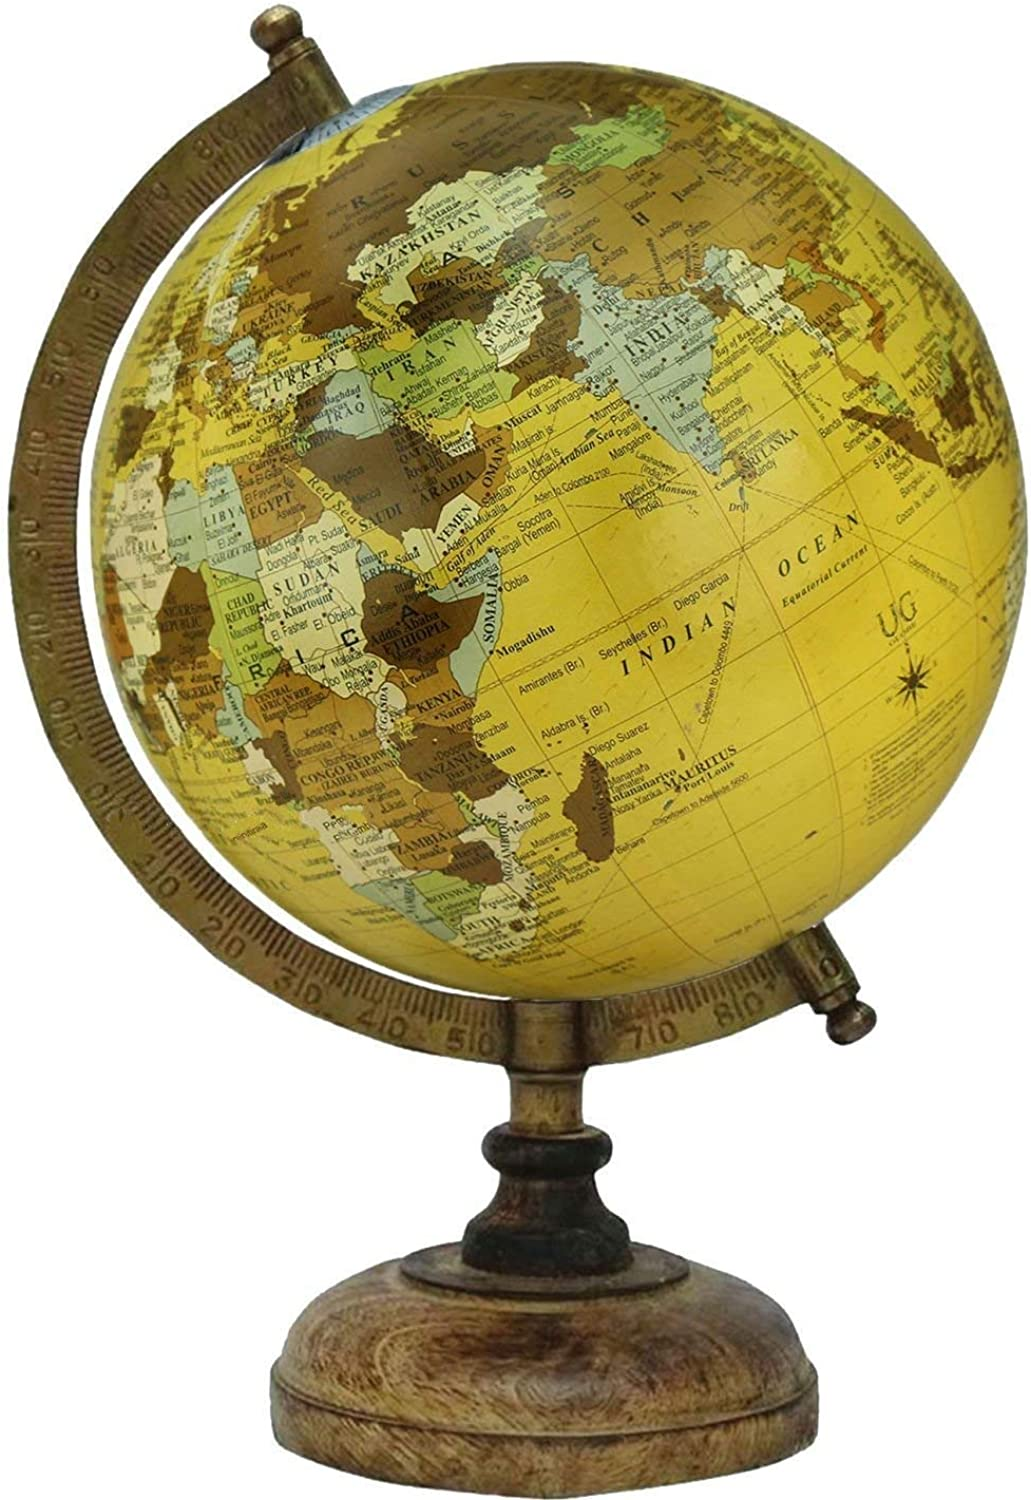 8  New Beige Educational, Antique Globe with Brass Antique Arc and Wooden Base, World Globe, Home Decor, Office Decor, Gift Item by Globes Hub